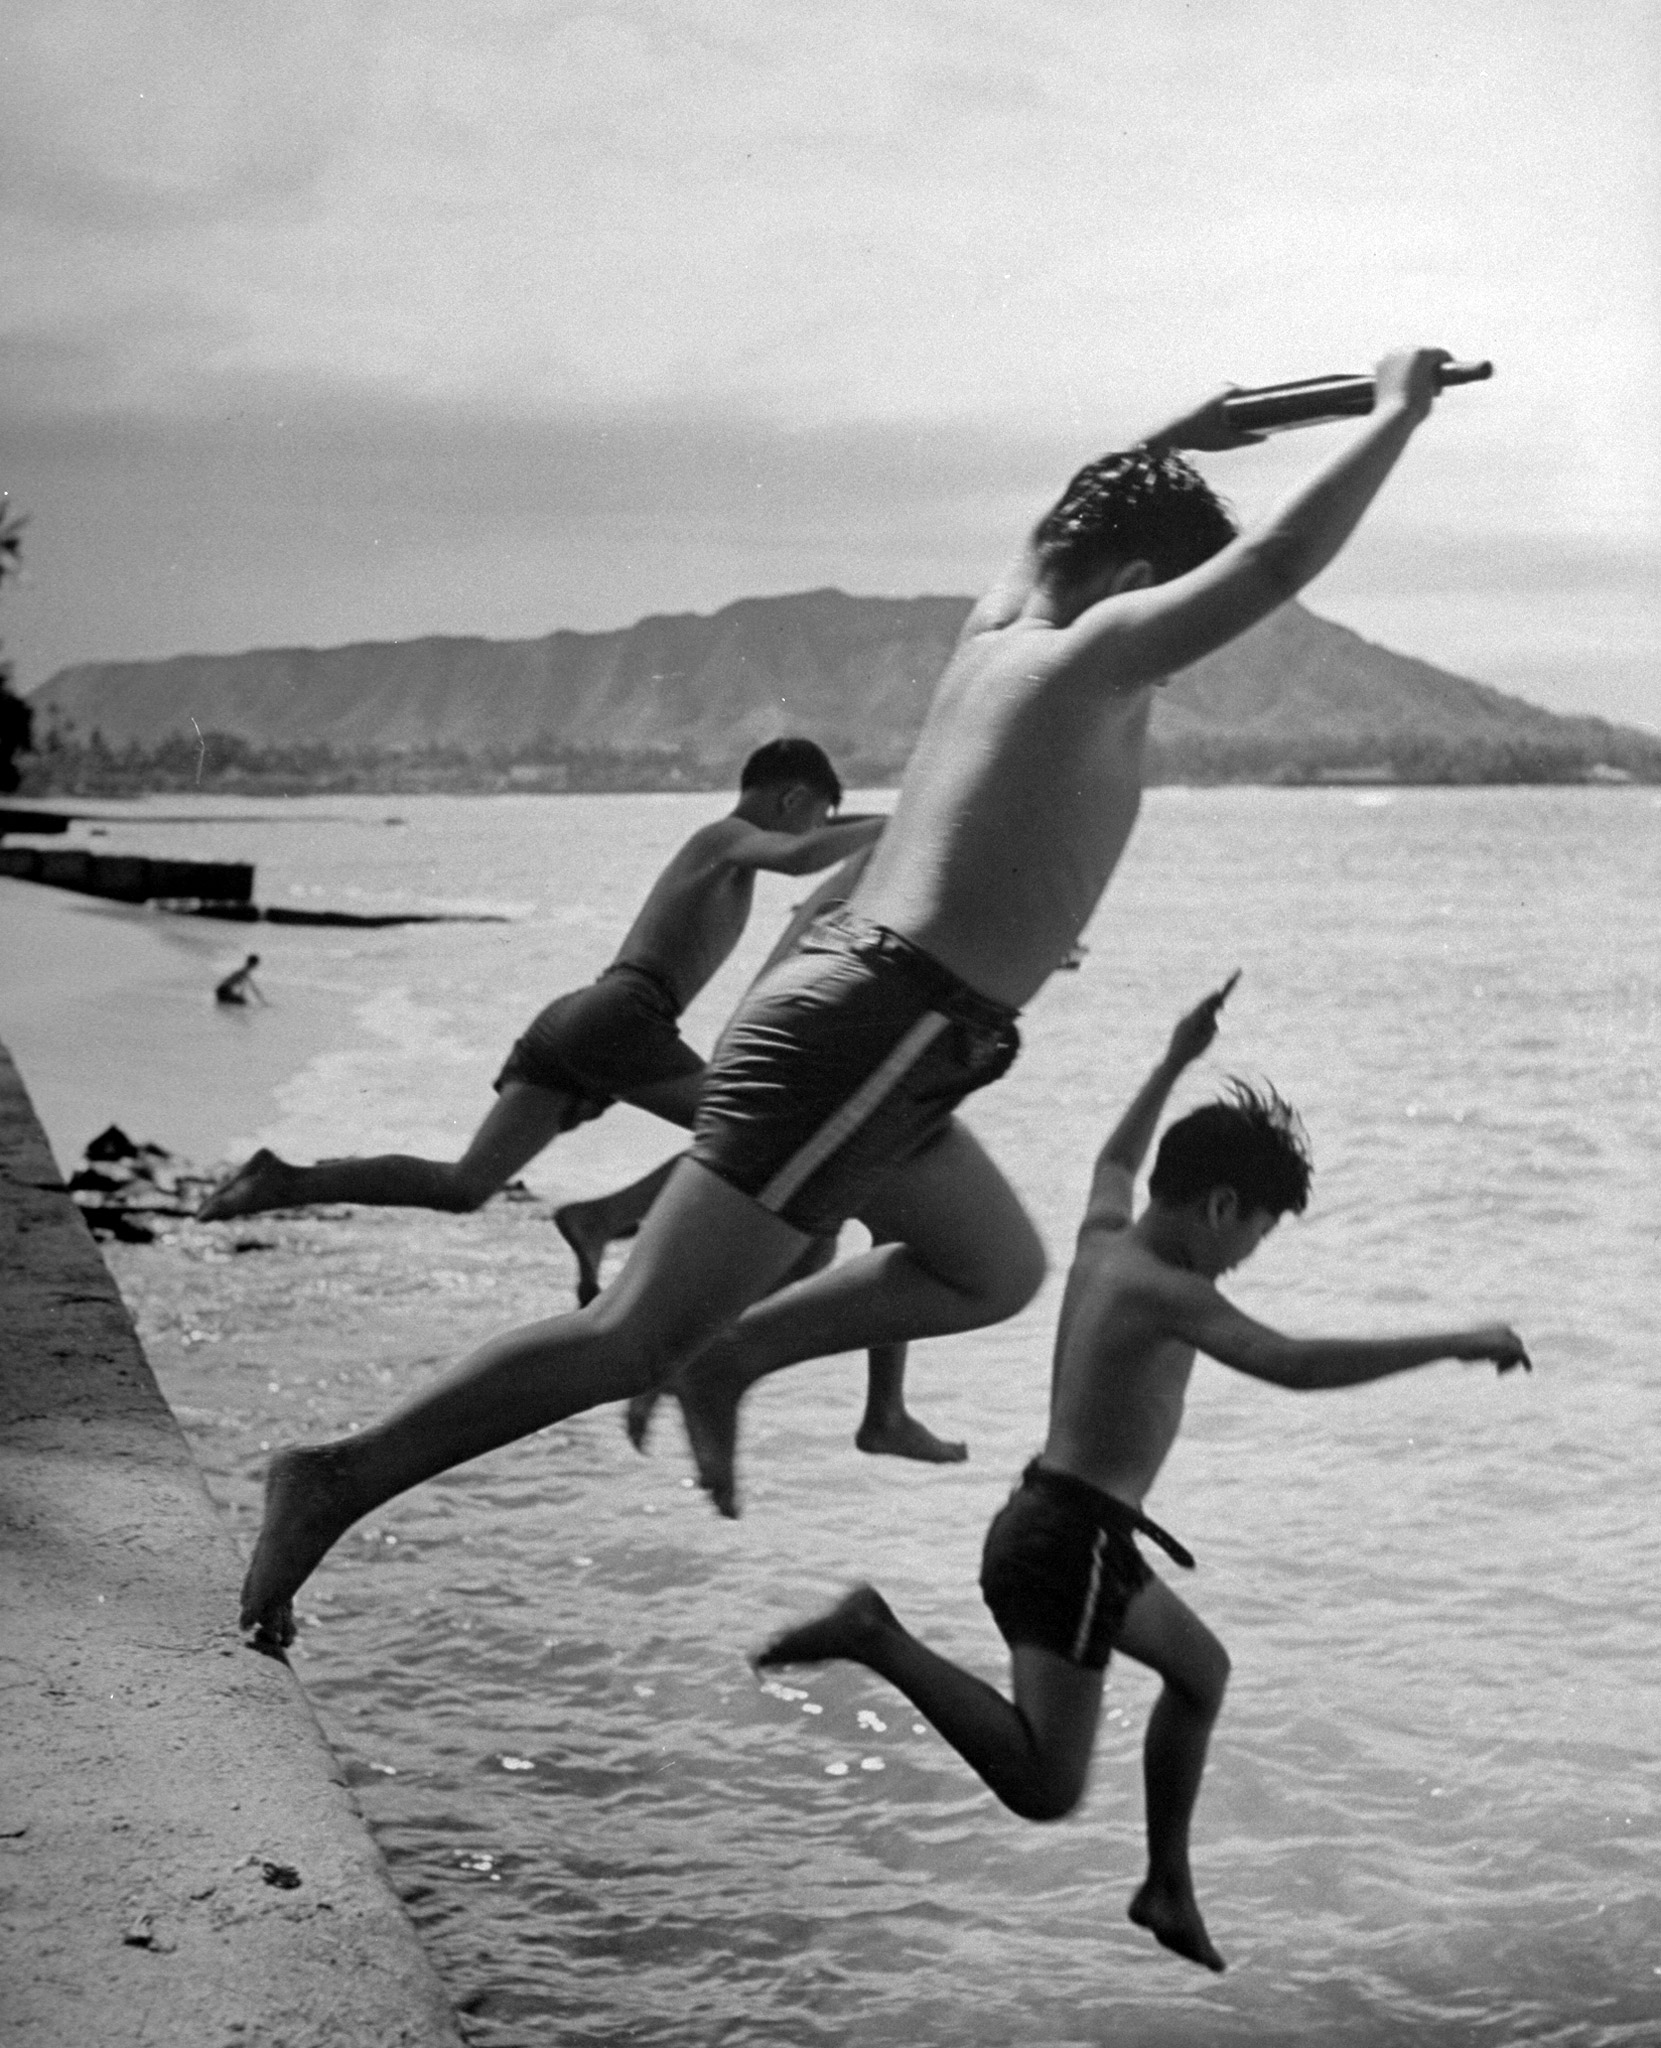 Japanese boys jump from a sea wall while playing soldiers in the American army.